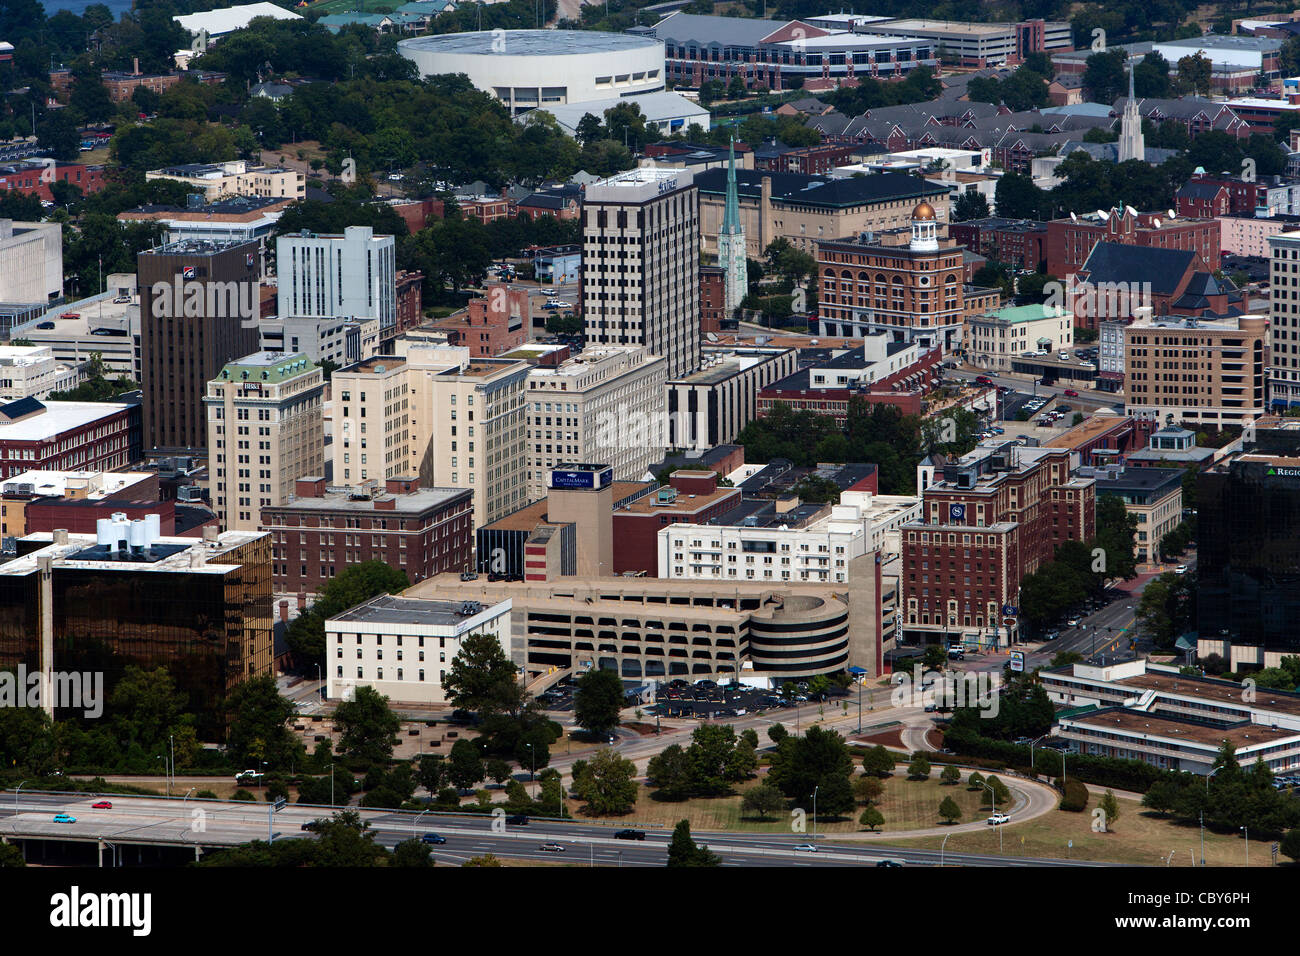 aerial photograph Chattanooga, Tennessee - Stock Image